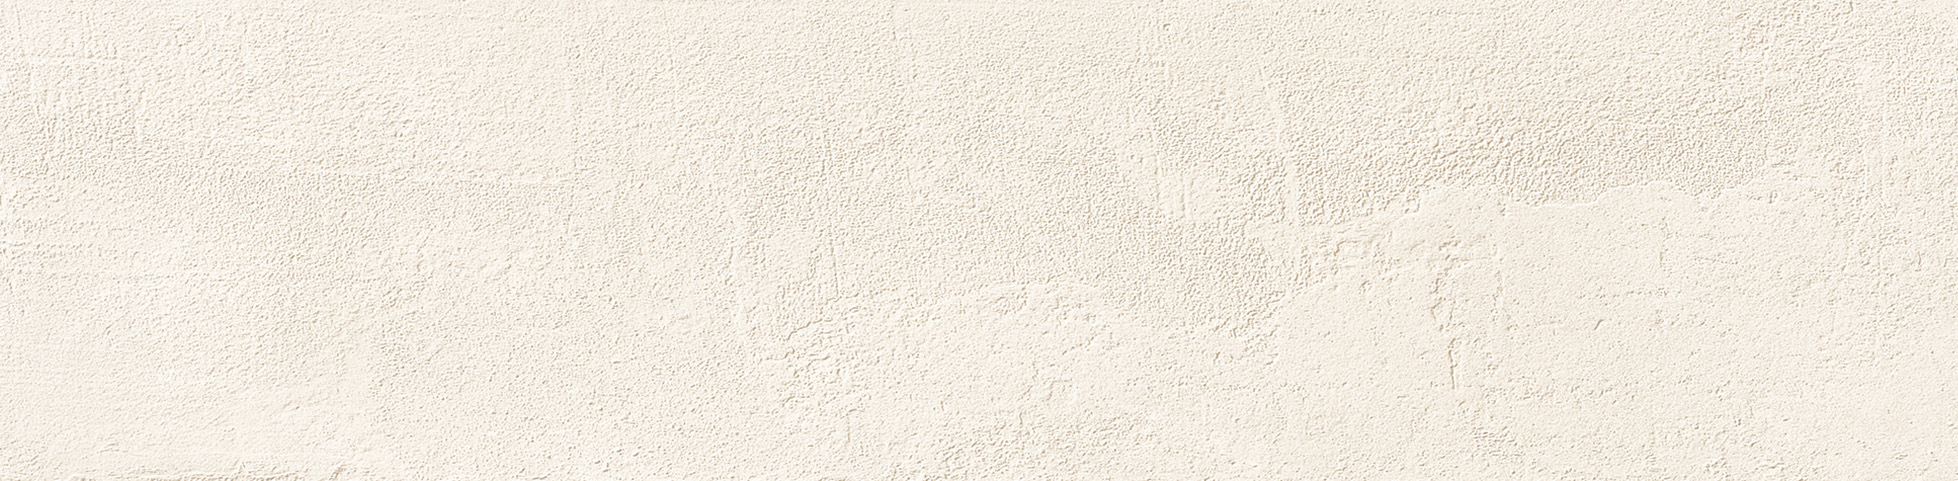 Bricktrend Almond by Marquis Collection 4